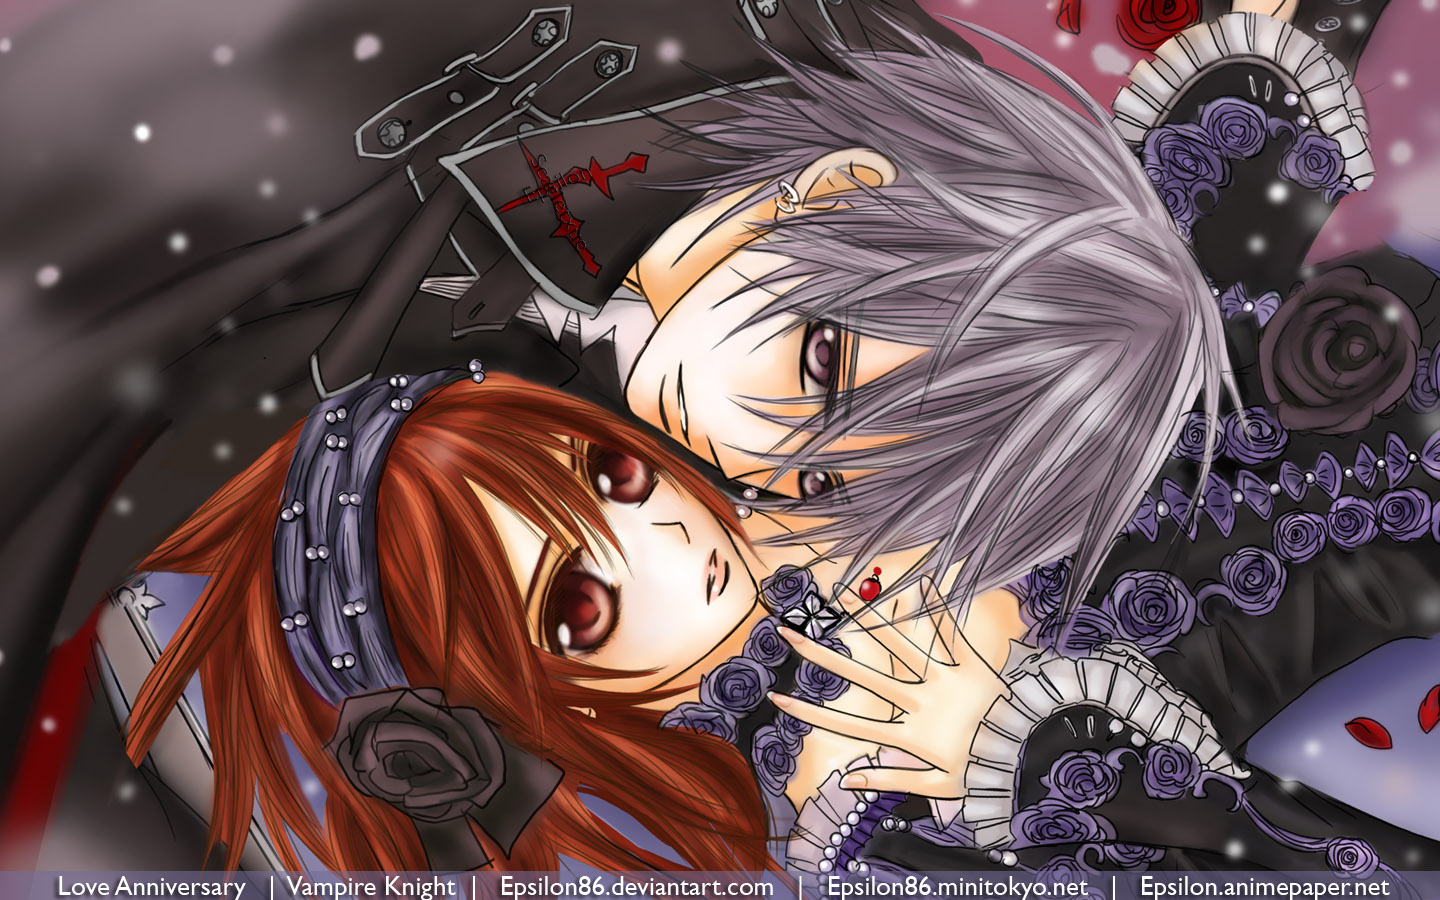 Download Vampire Knight Wallpaper: Im Waiting for You